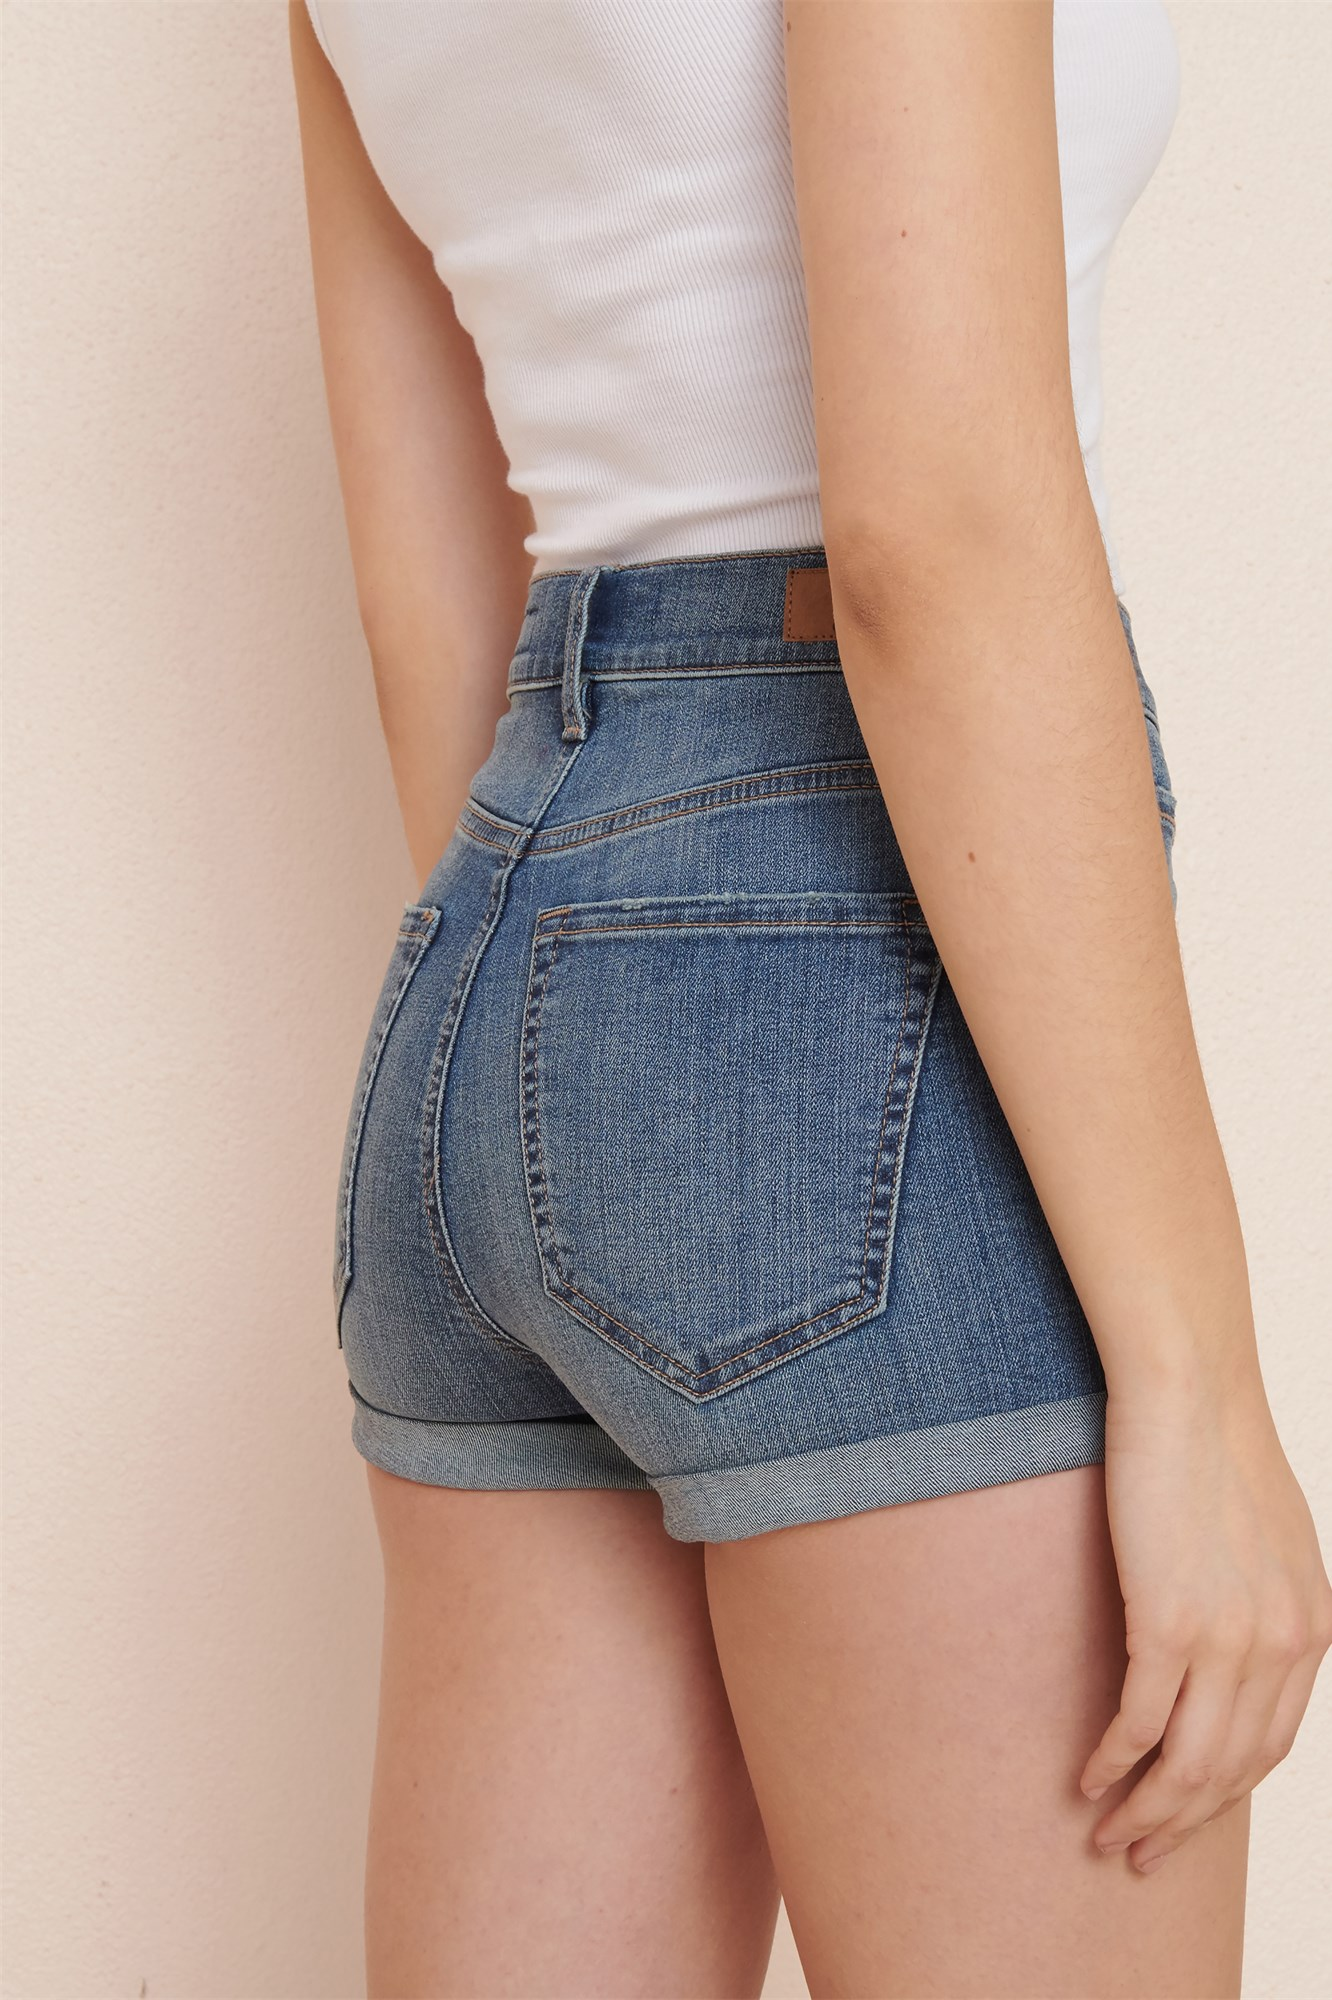 stores that have high waisted shorts